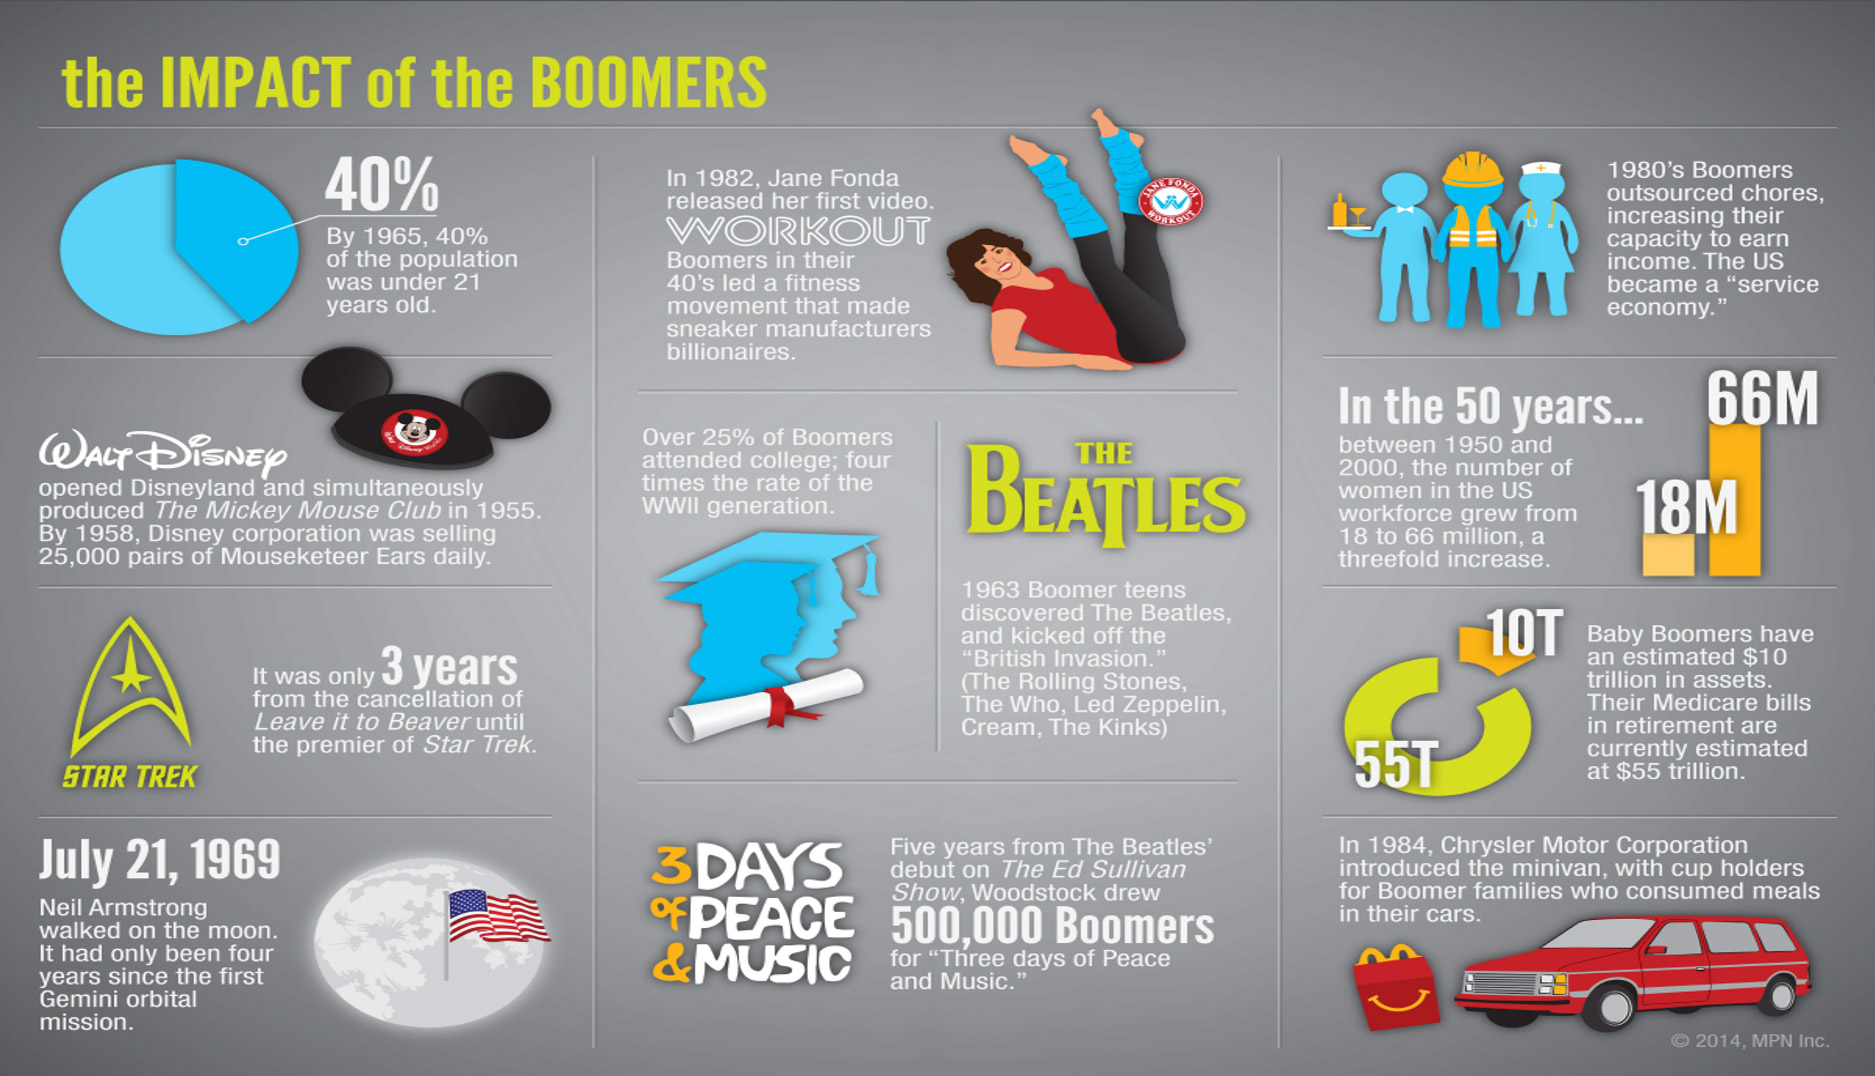 Impact of the Boomers